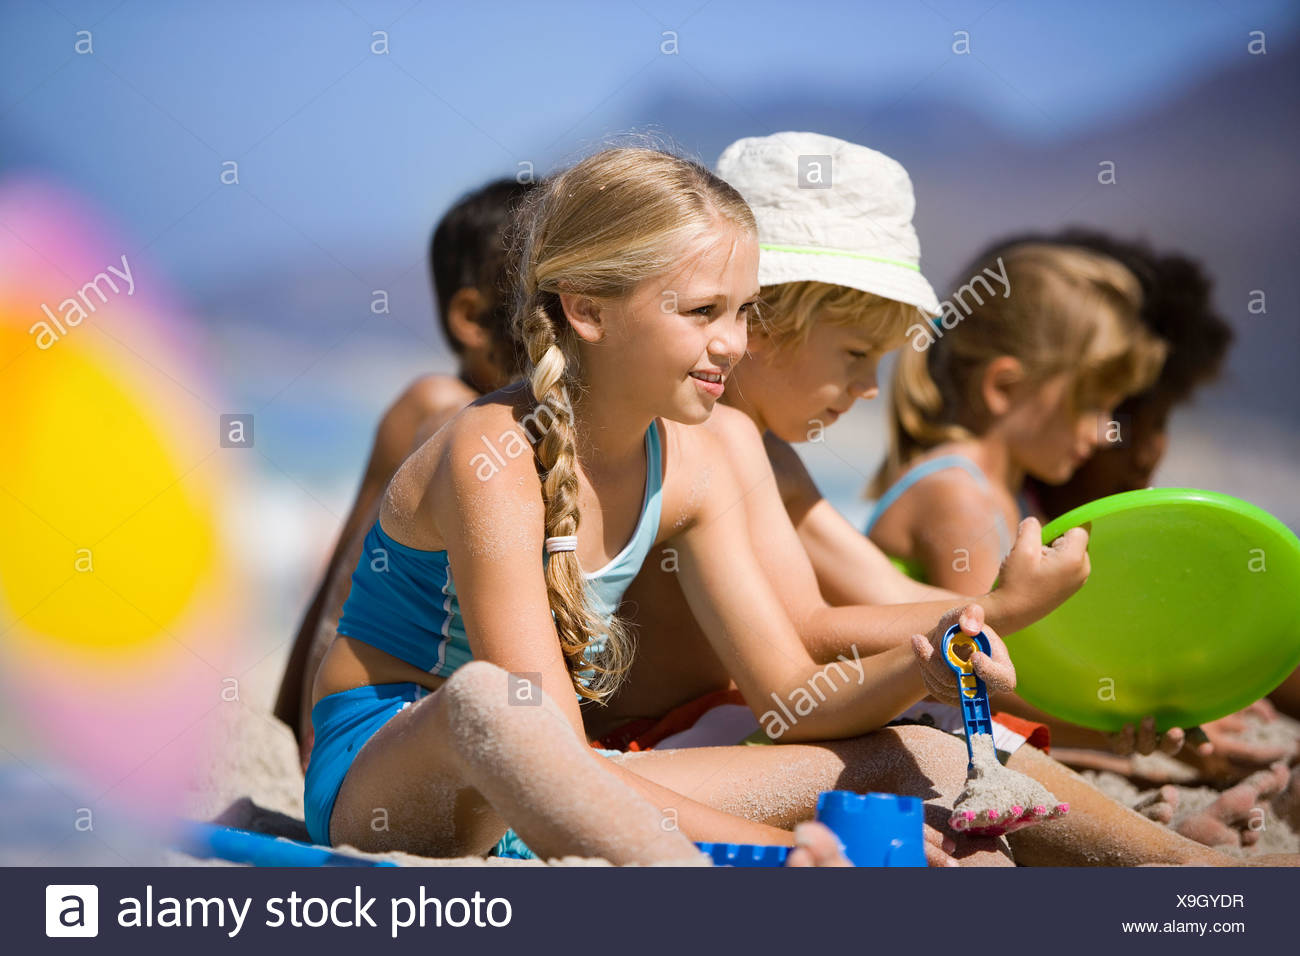 Children 4 9 sitting in line on beach smiling side view differential focus - Stock Image